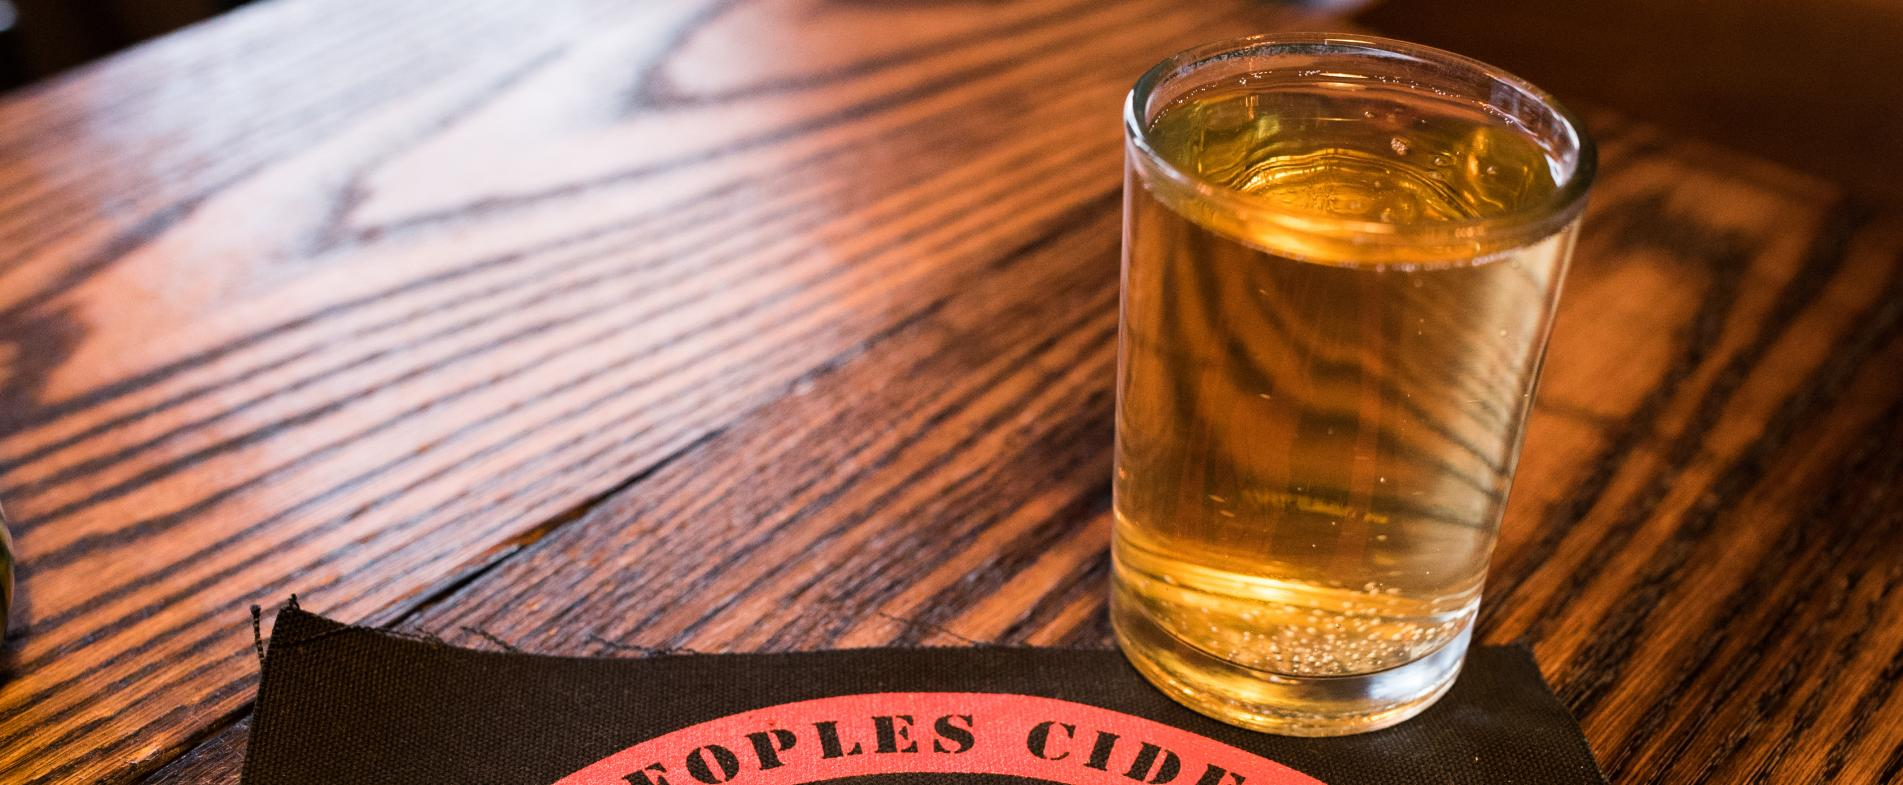 The People's Cider Co. is known for its premium dry ciders, similar to European cider culture which is unique to West Michigan.